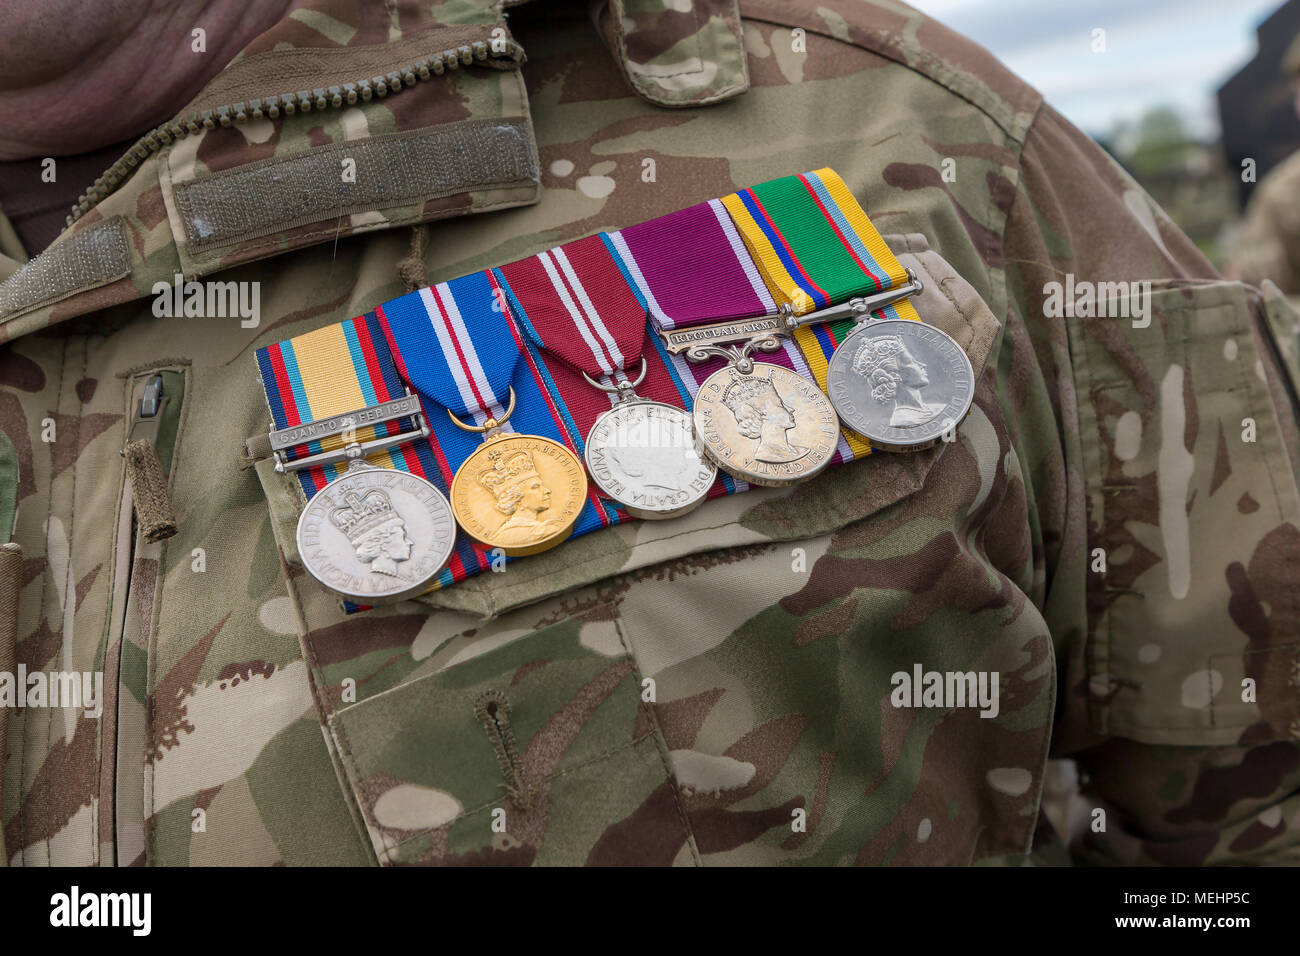 Warrington, UK, 22 April 2018. Medals worn on the chest of a Senior Officer from The Queen's Lancashire Regiment in camouflage kit on ANZAC day in Soldiers' Corner of Warrington Cemetery on Sunday 22 April 2018 Credit: John Hopkins/Alamy Live News - Stock Image